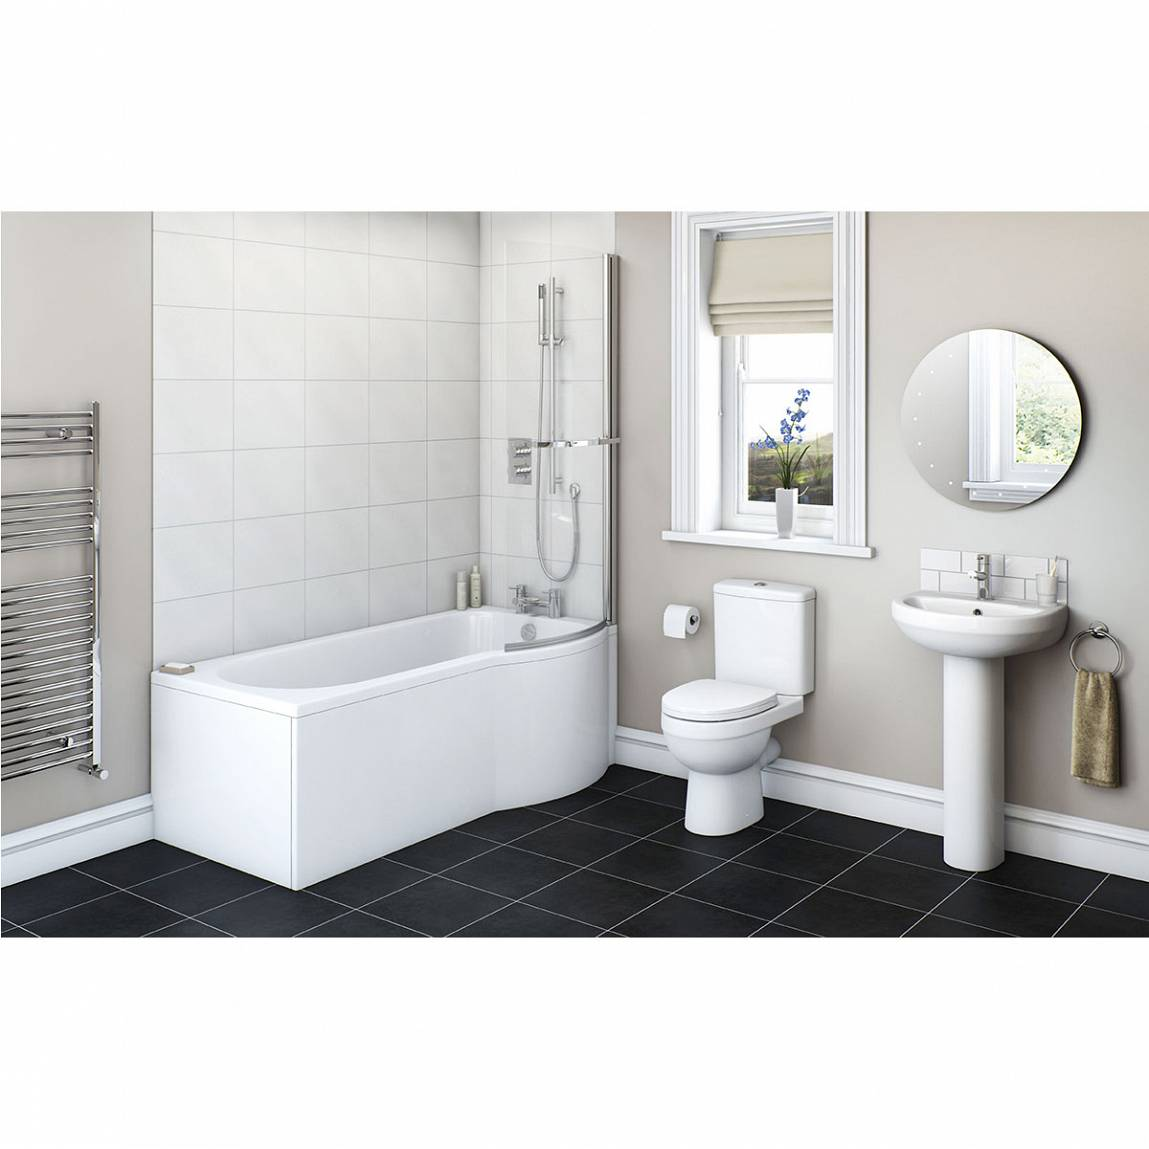 Image of Energy Bathroom Set with Evesham 1500 x 800 Shower Bath Suite RH